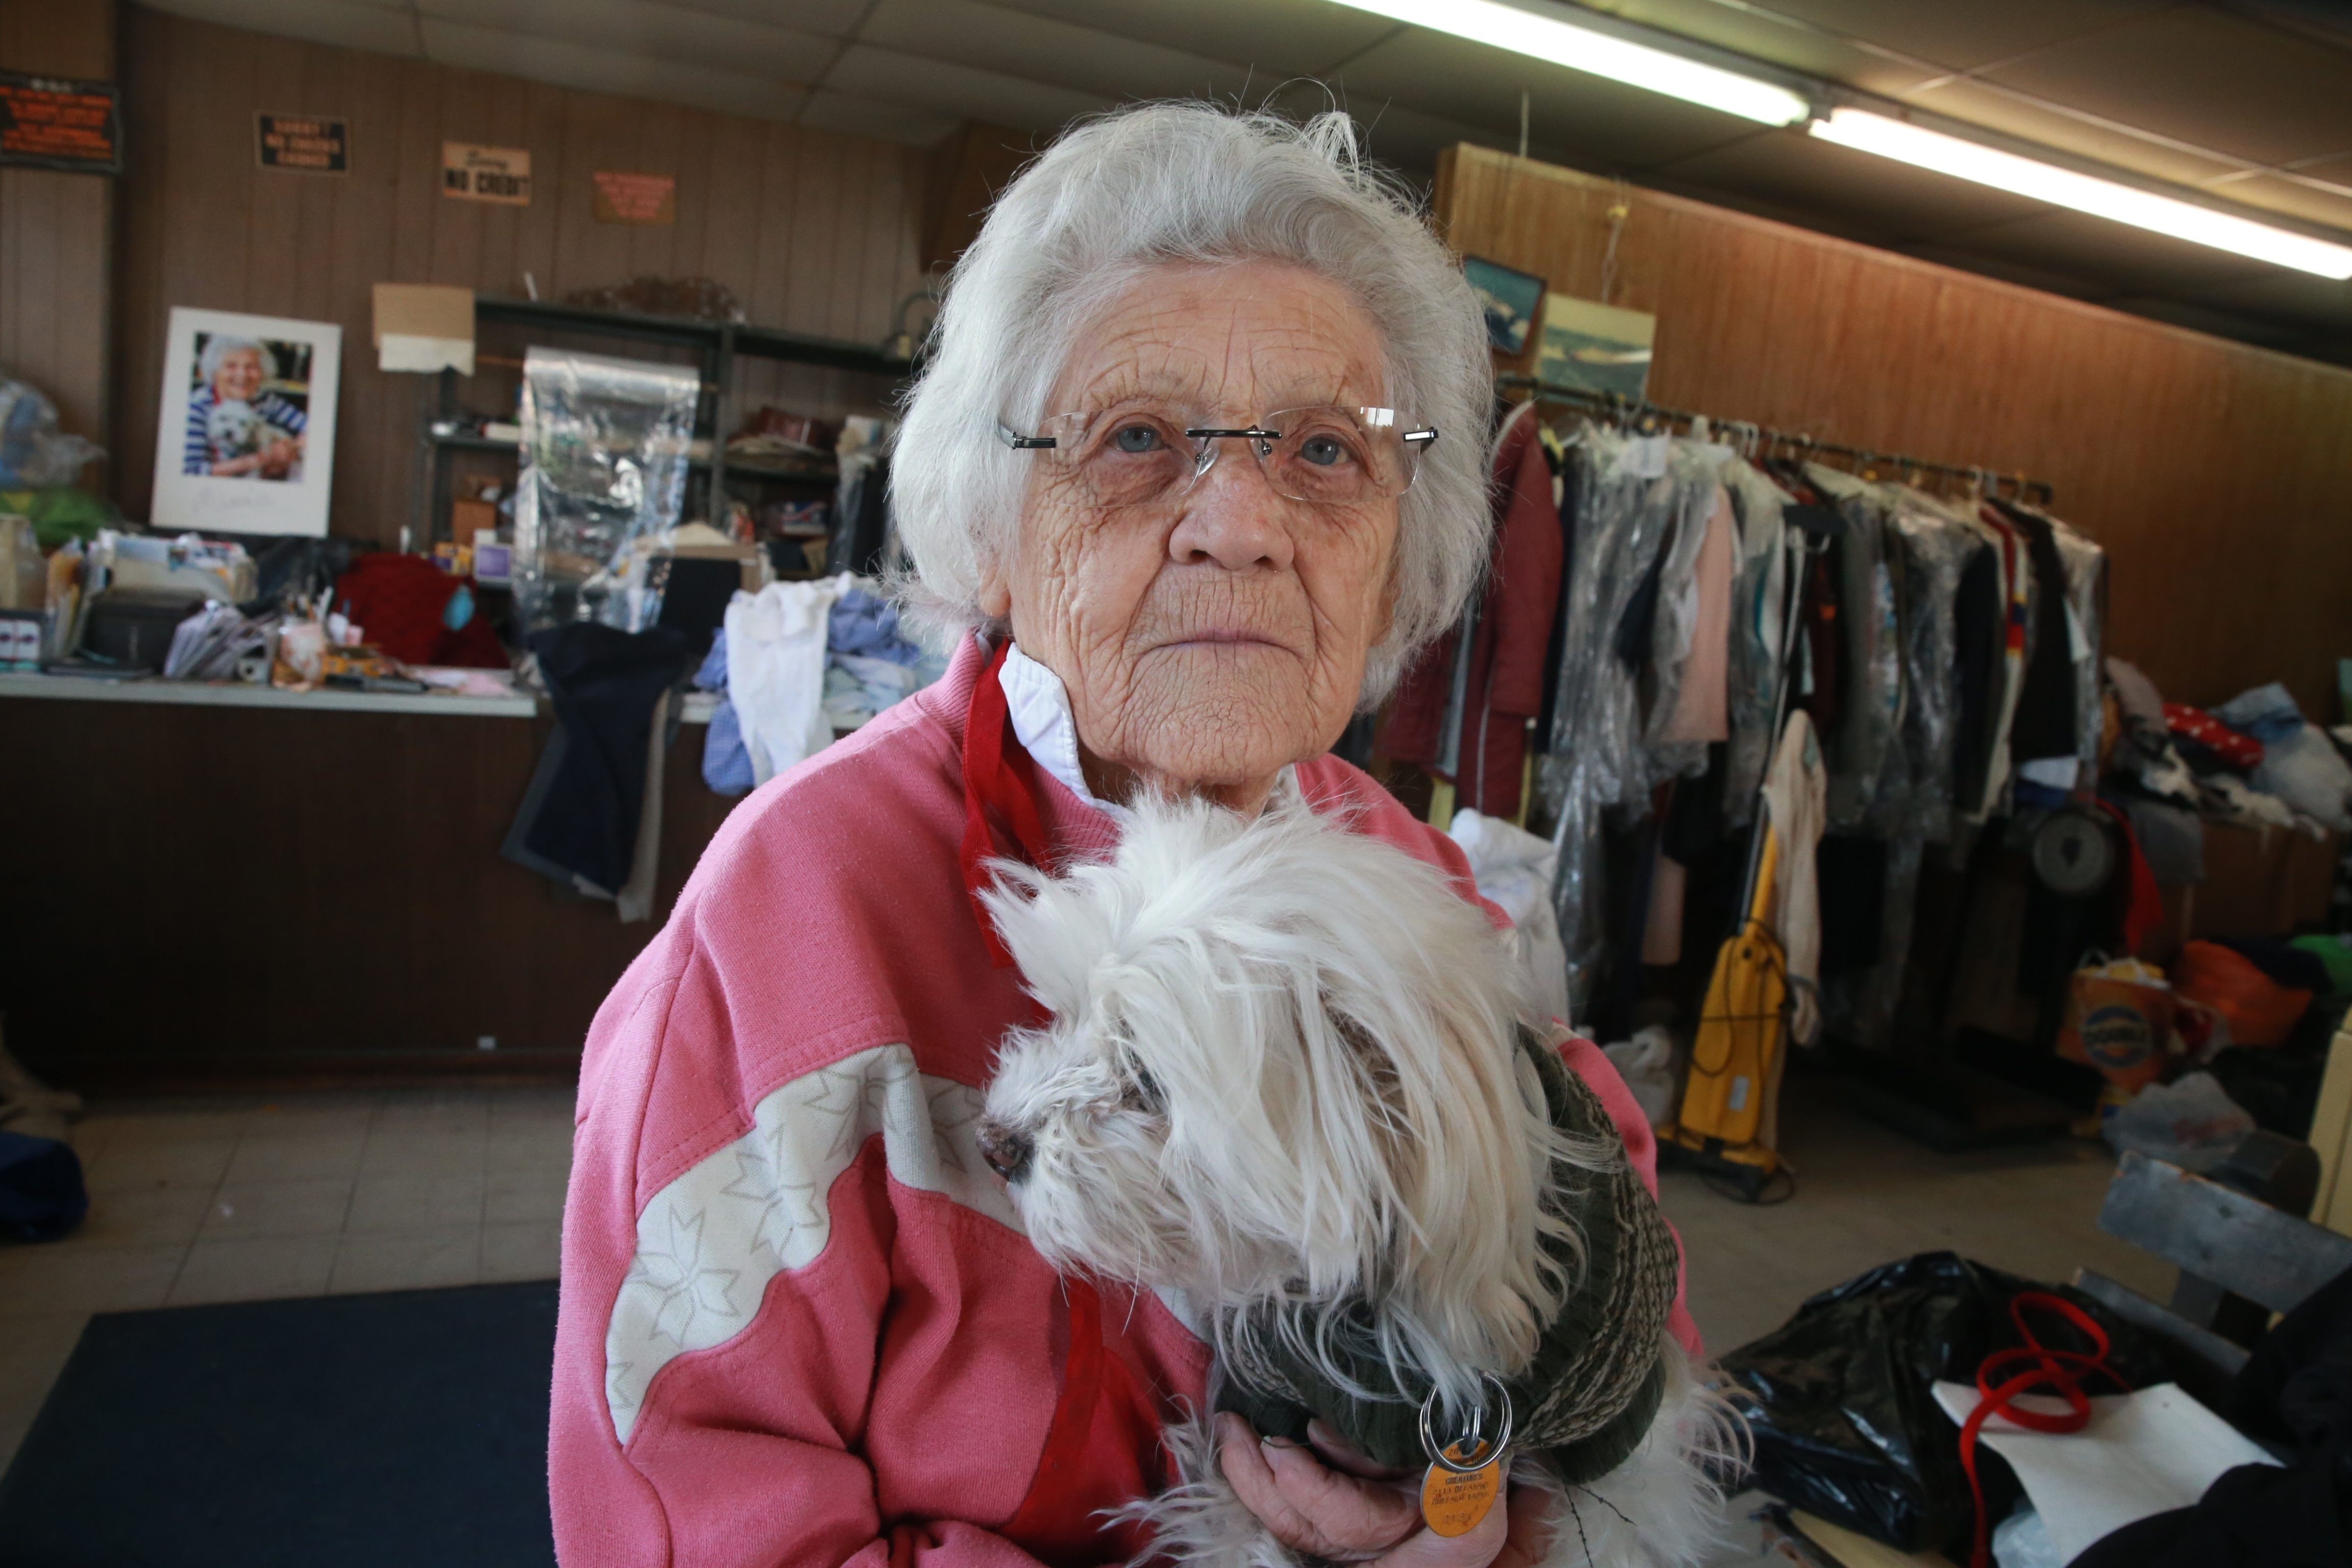 """One hundred-year-old Felimina """"Minnie"""" Rotundo holds Benji, her best friend, at her College Laundry Shoppe on Main Street in the University District. She still works 10 hours a day, six days each week and is looking forward to her 101st birthday in August, which she'll celebrate at her summer cottage in Angola."""